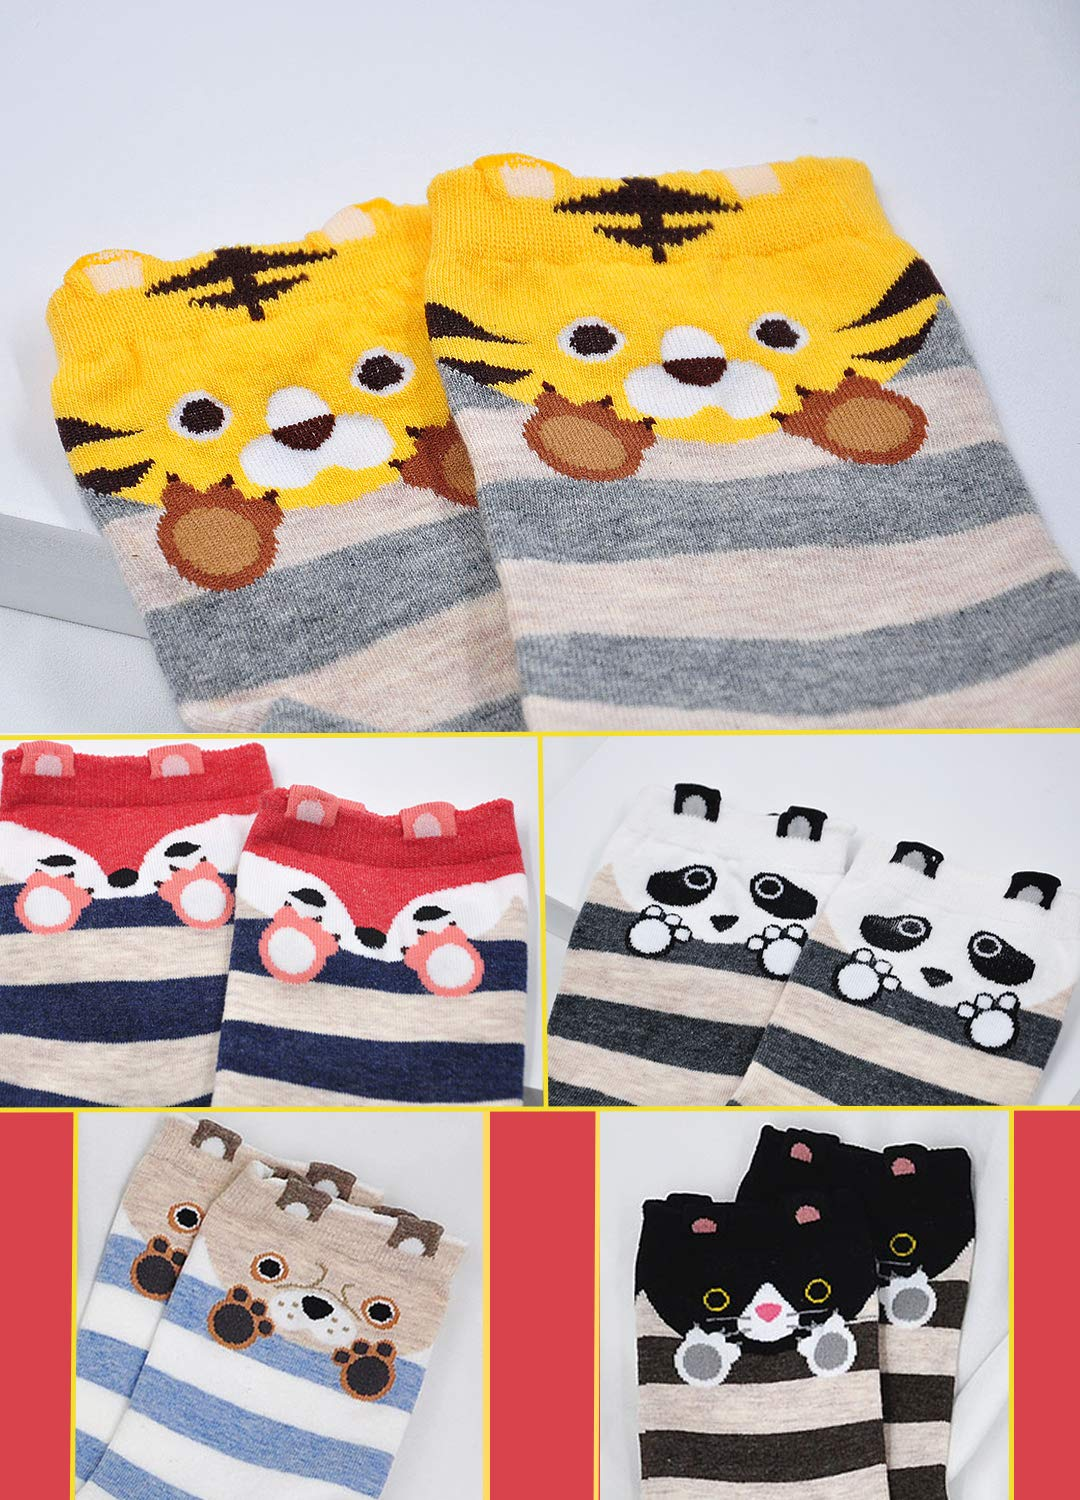 Women Fuzzy Socks Cotton Crazy Crew Funny Cute Novelty Animal Casual Ankle Christmas Socks for Girls Gift 5 Pairs